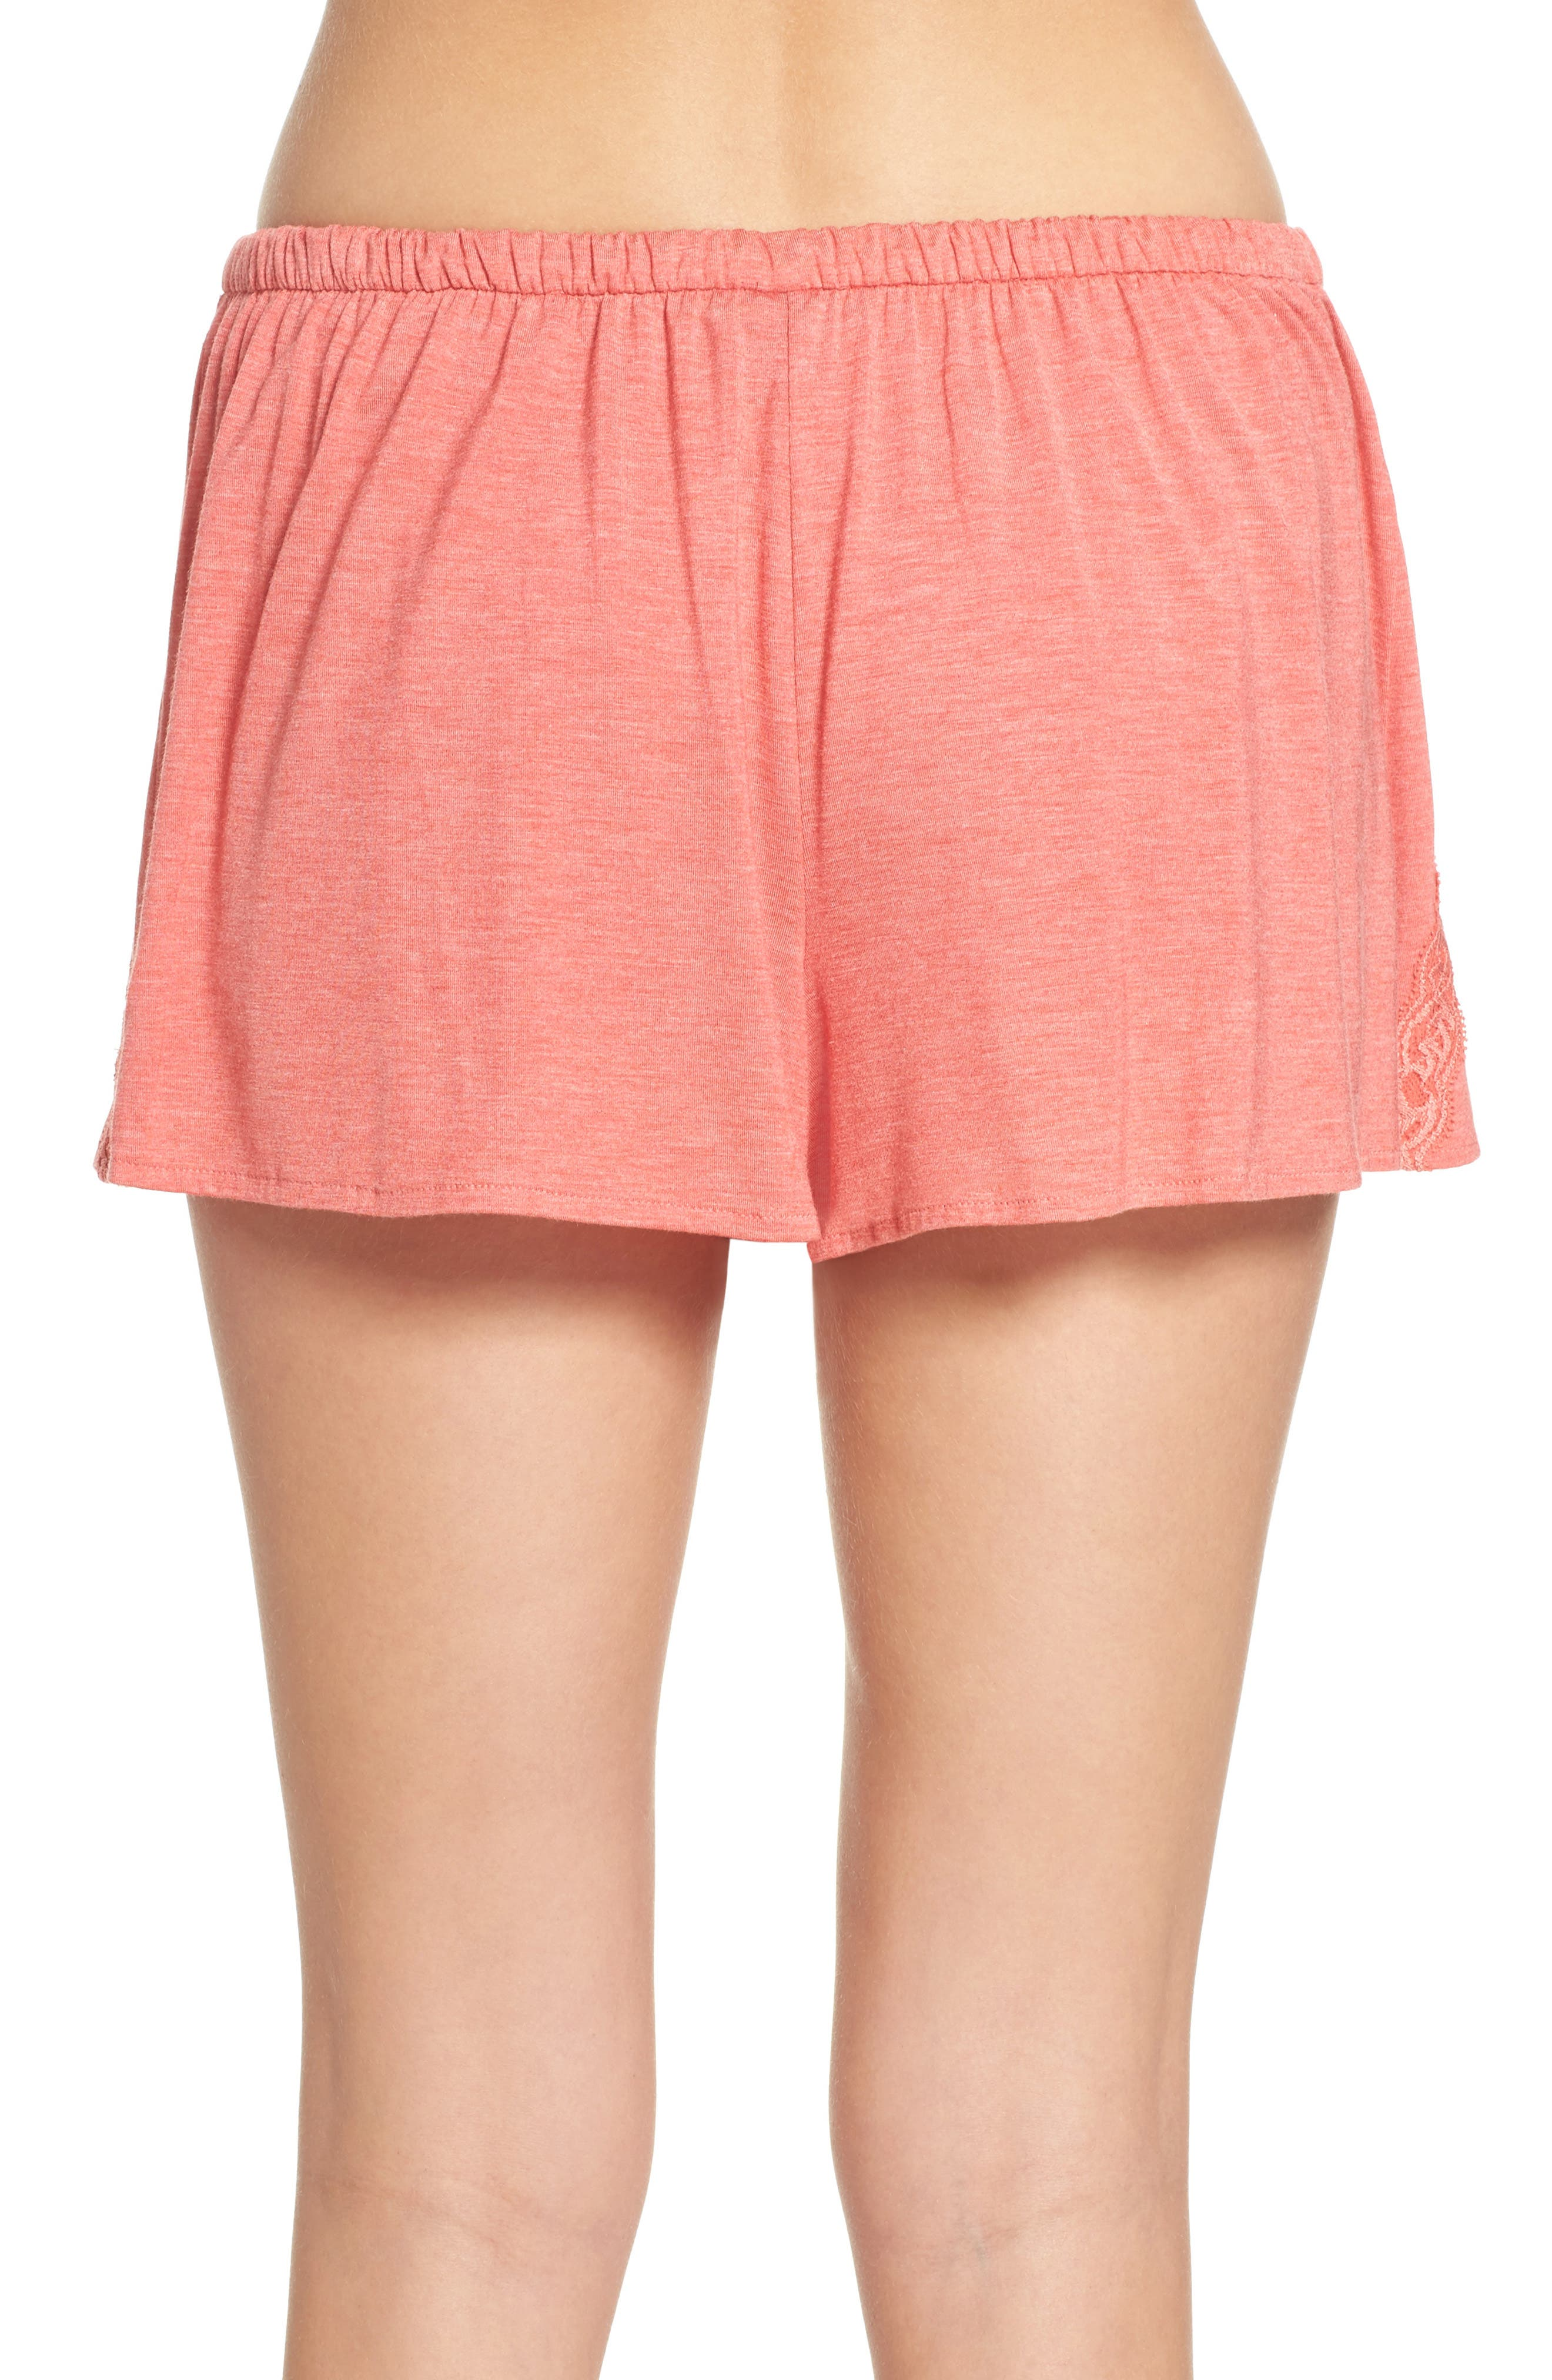 Feathers Essential Pajama Shorts,                             Alternate thumbnail 4, color,